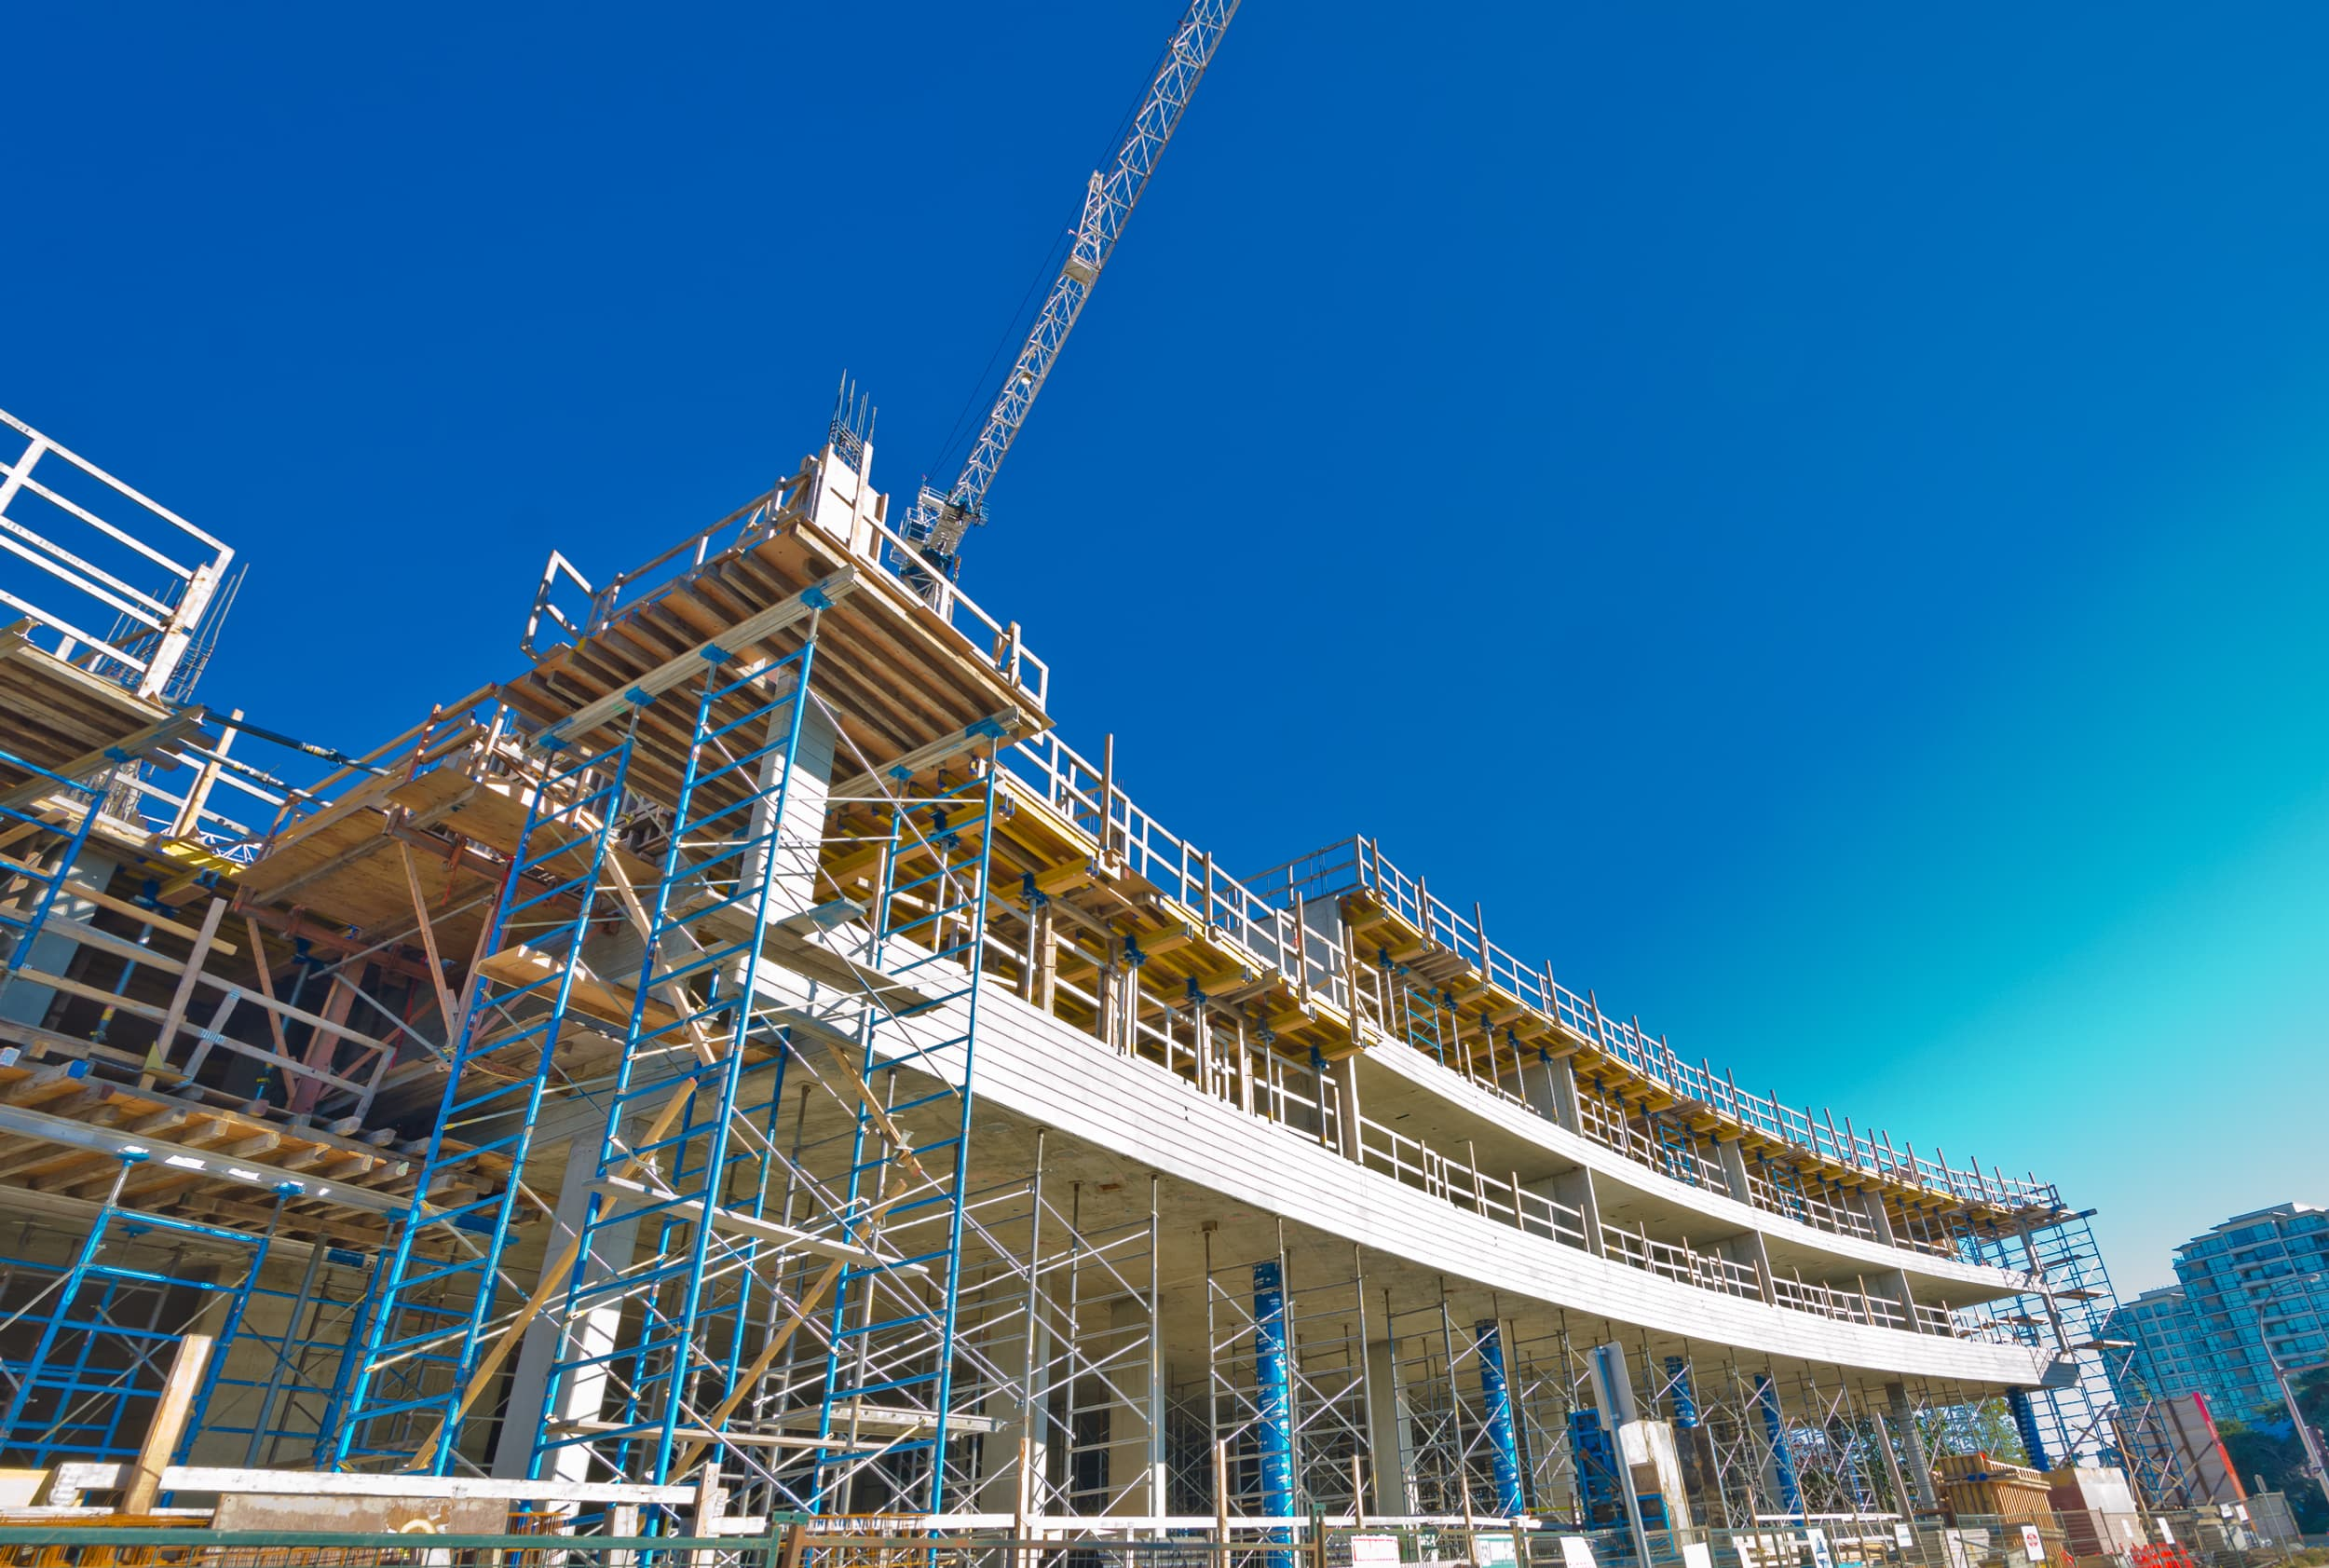 Compliance Training Online Canada Scaffolding Safety course